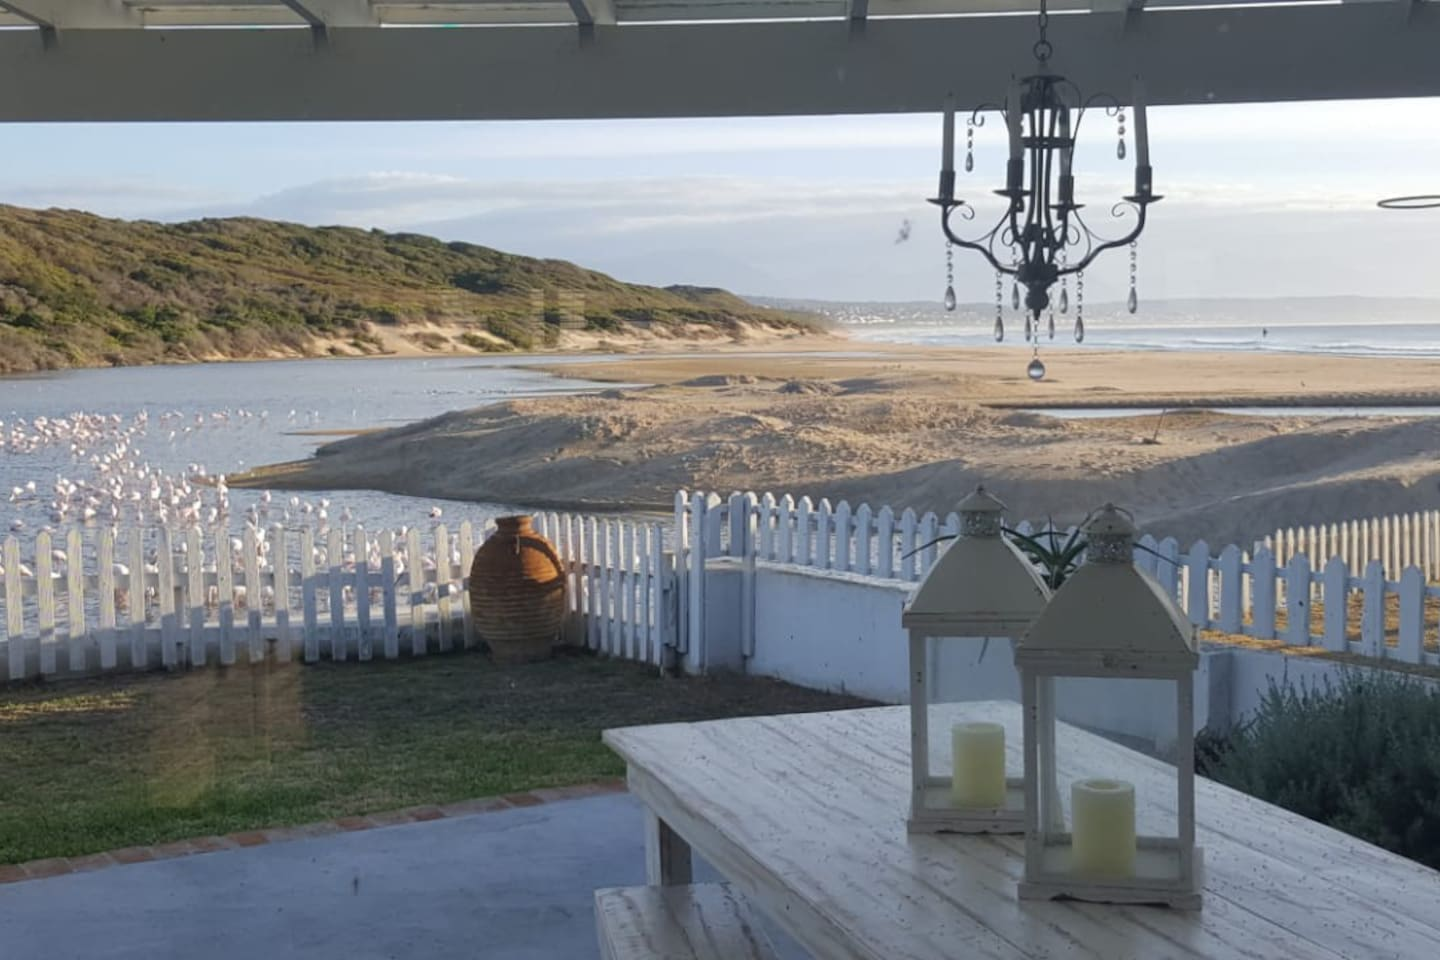 Set on the estuary banks with views of the waves breaking on the beach - what can be more relaxing?